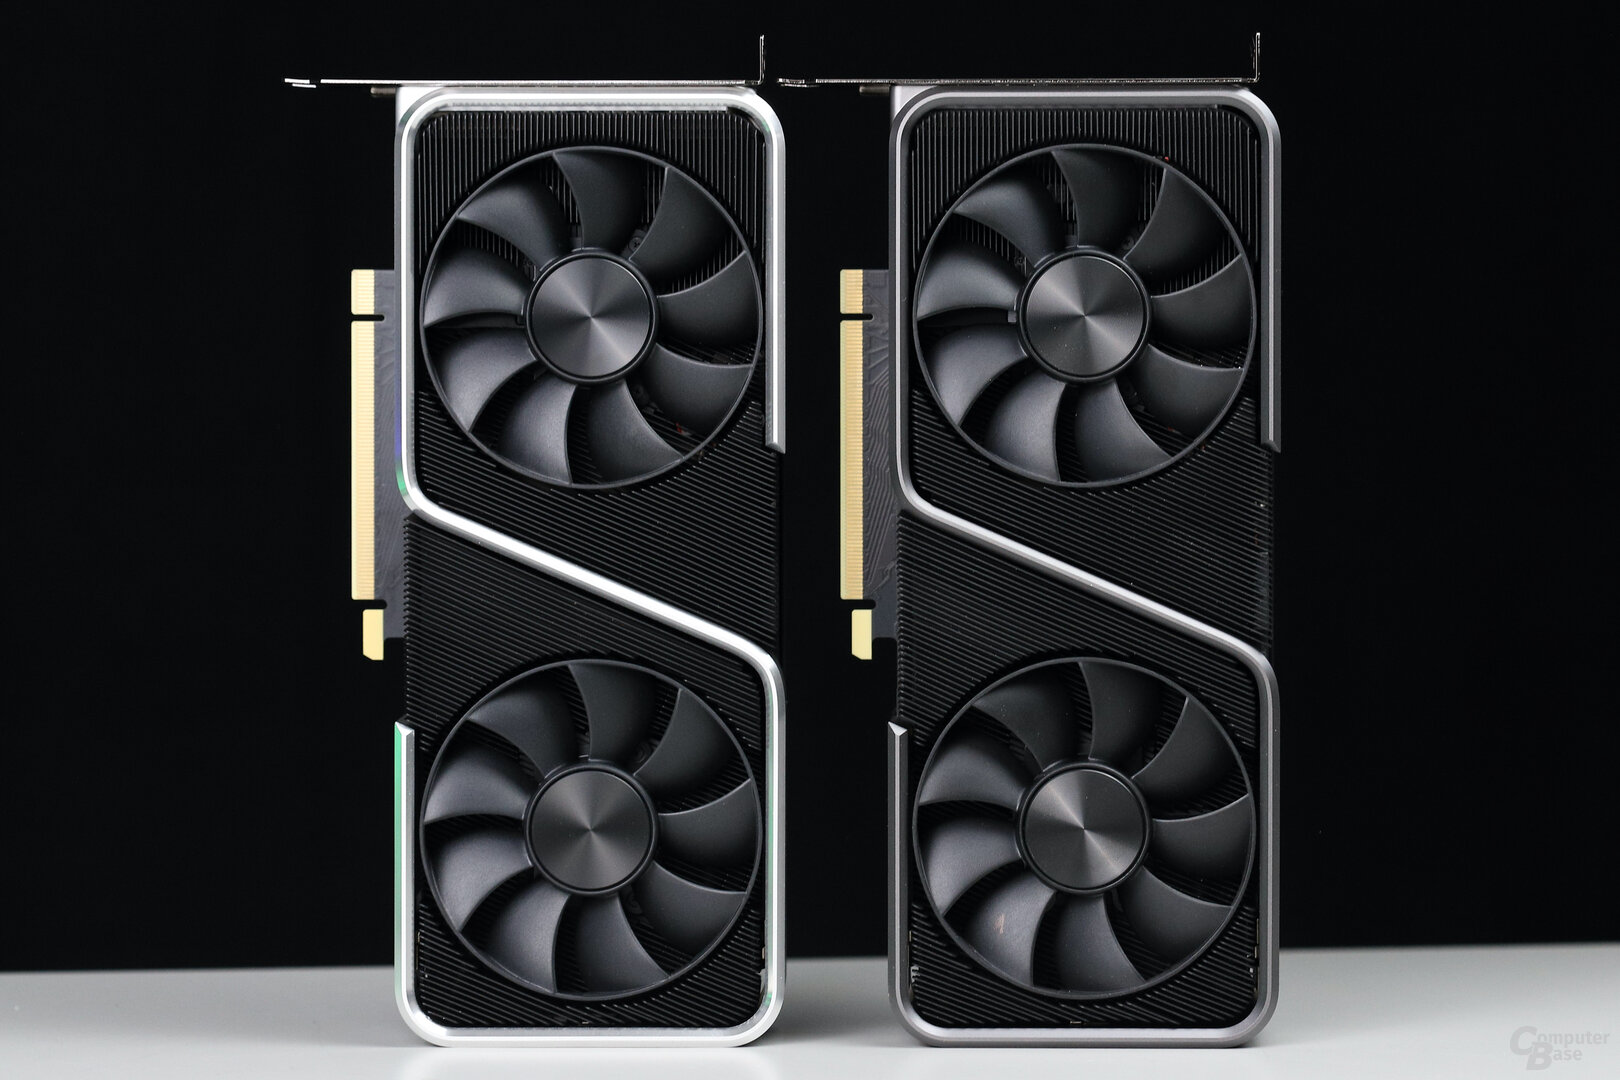 Nvidia GeForce RTX 3060 Ti Founders Edition (links) und RTX 3070 FE (rechts)